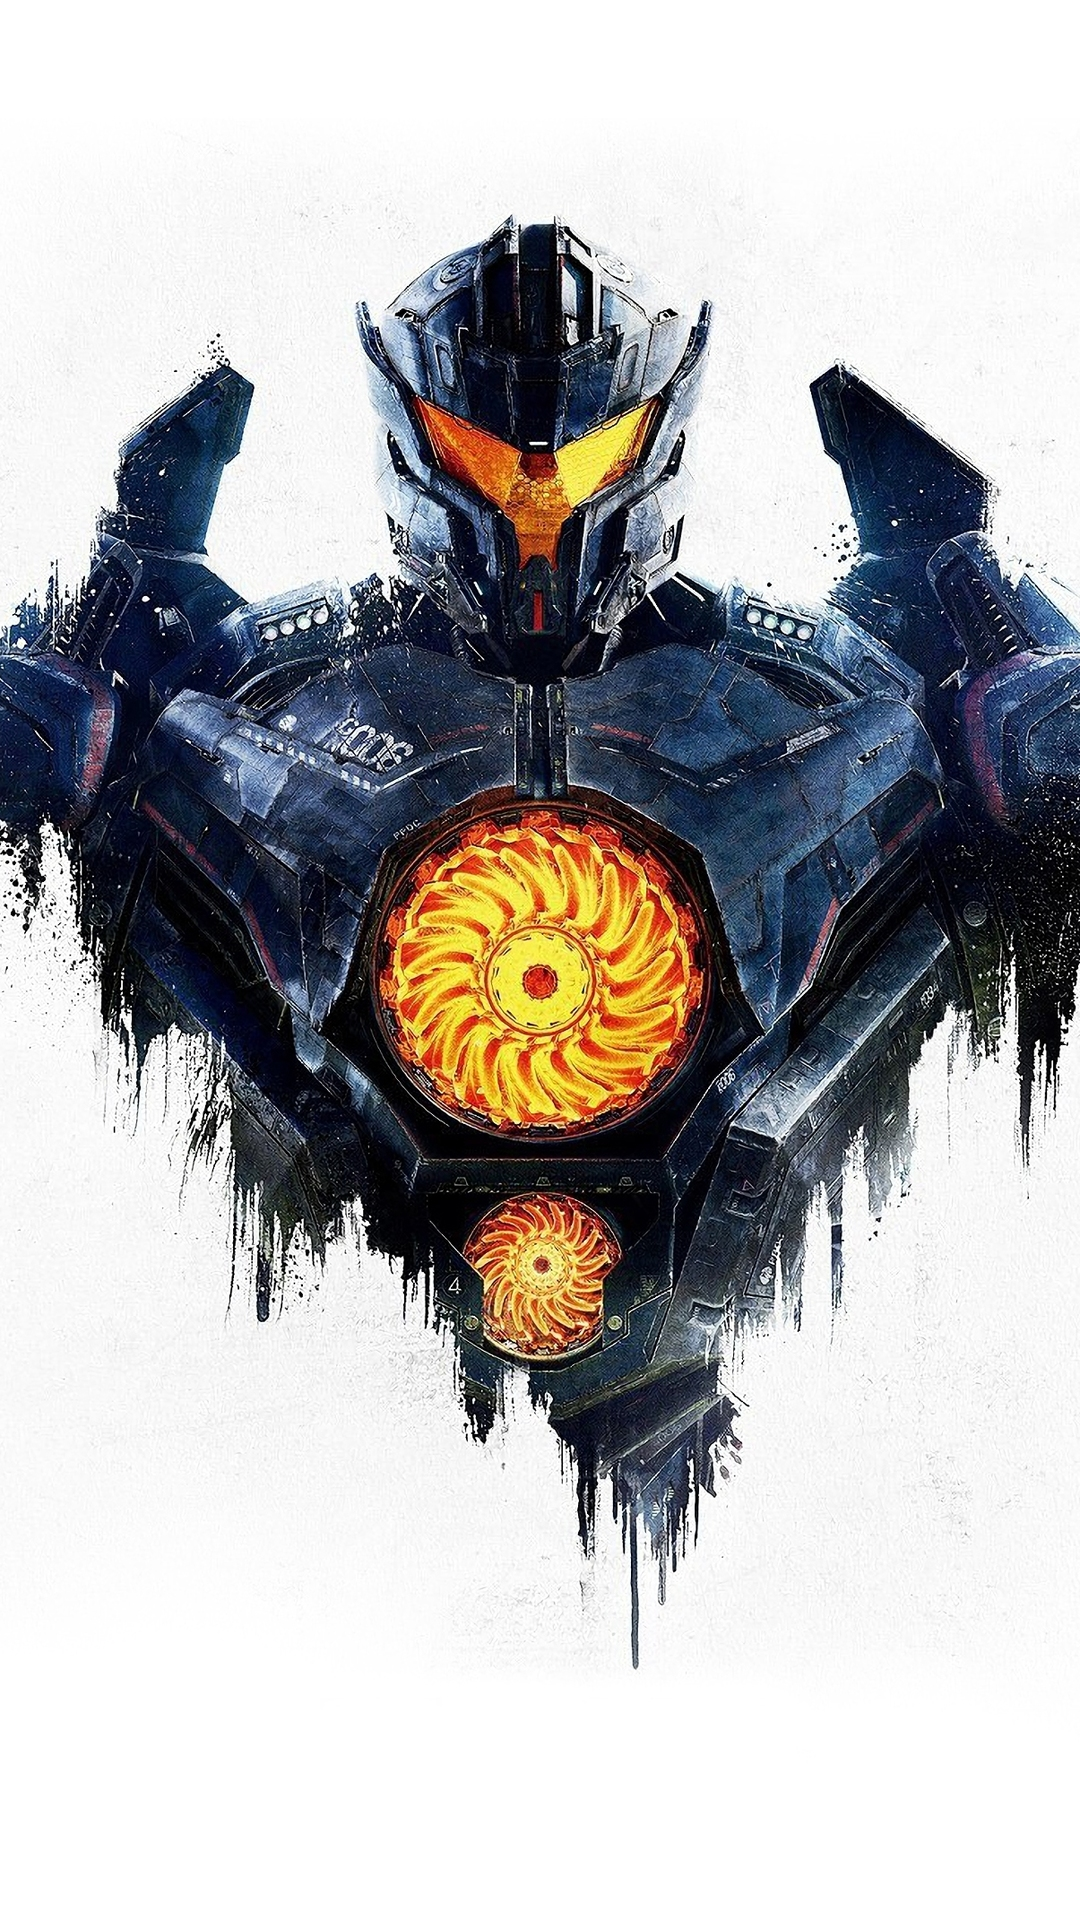 Pacific Rim 2 wallpaper